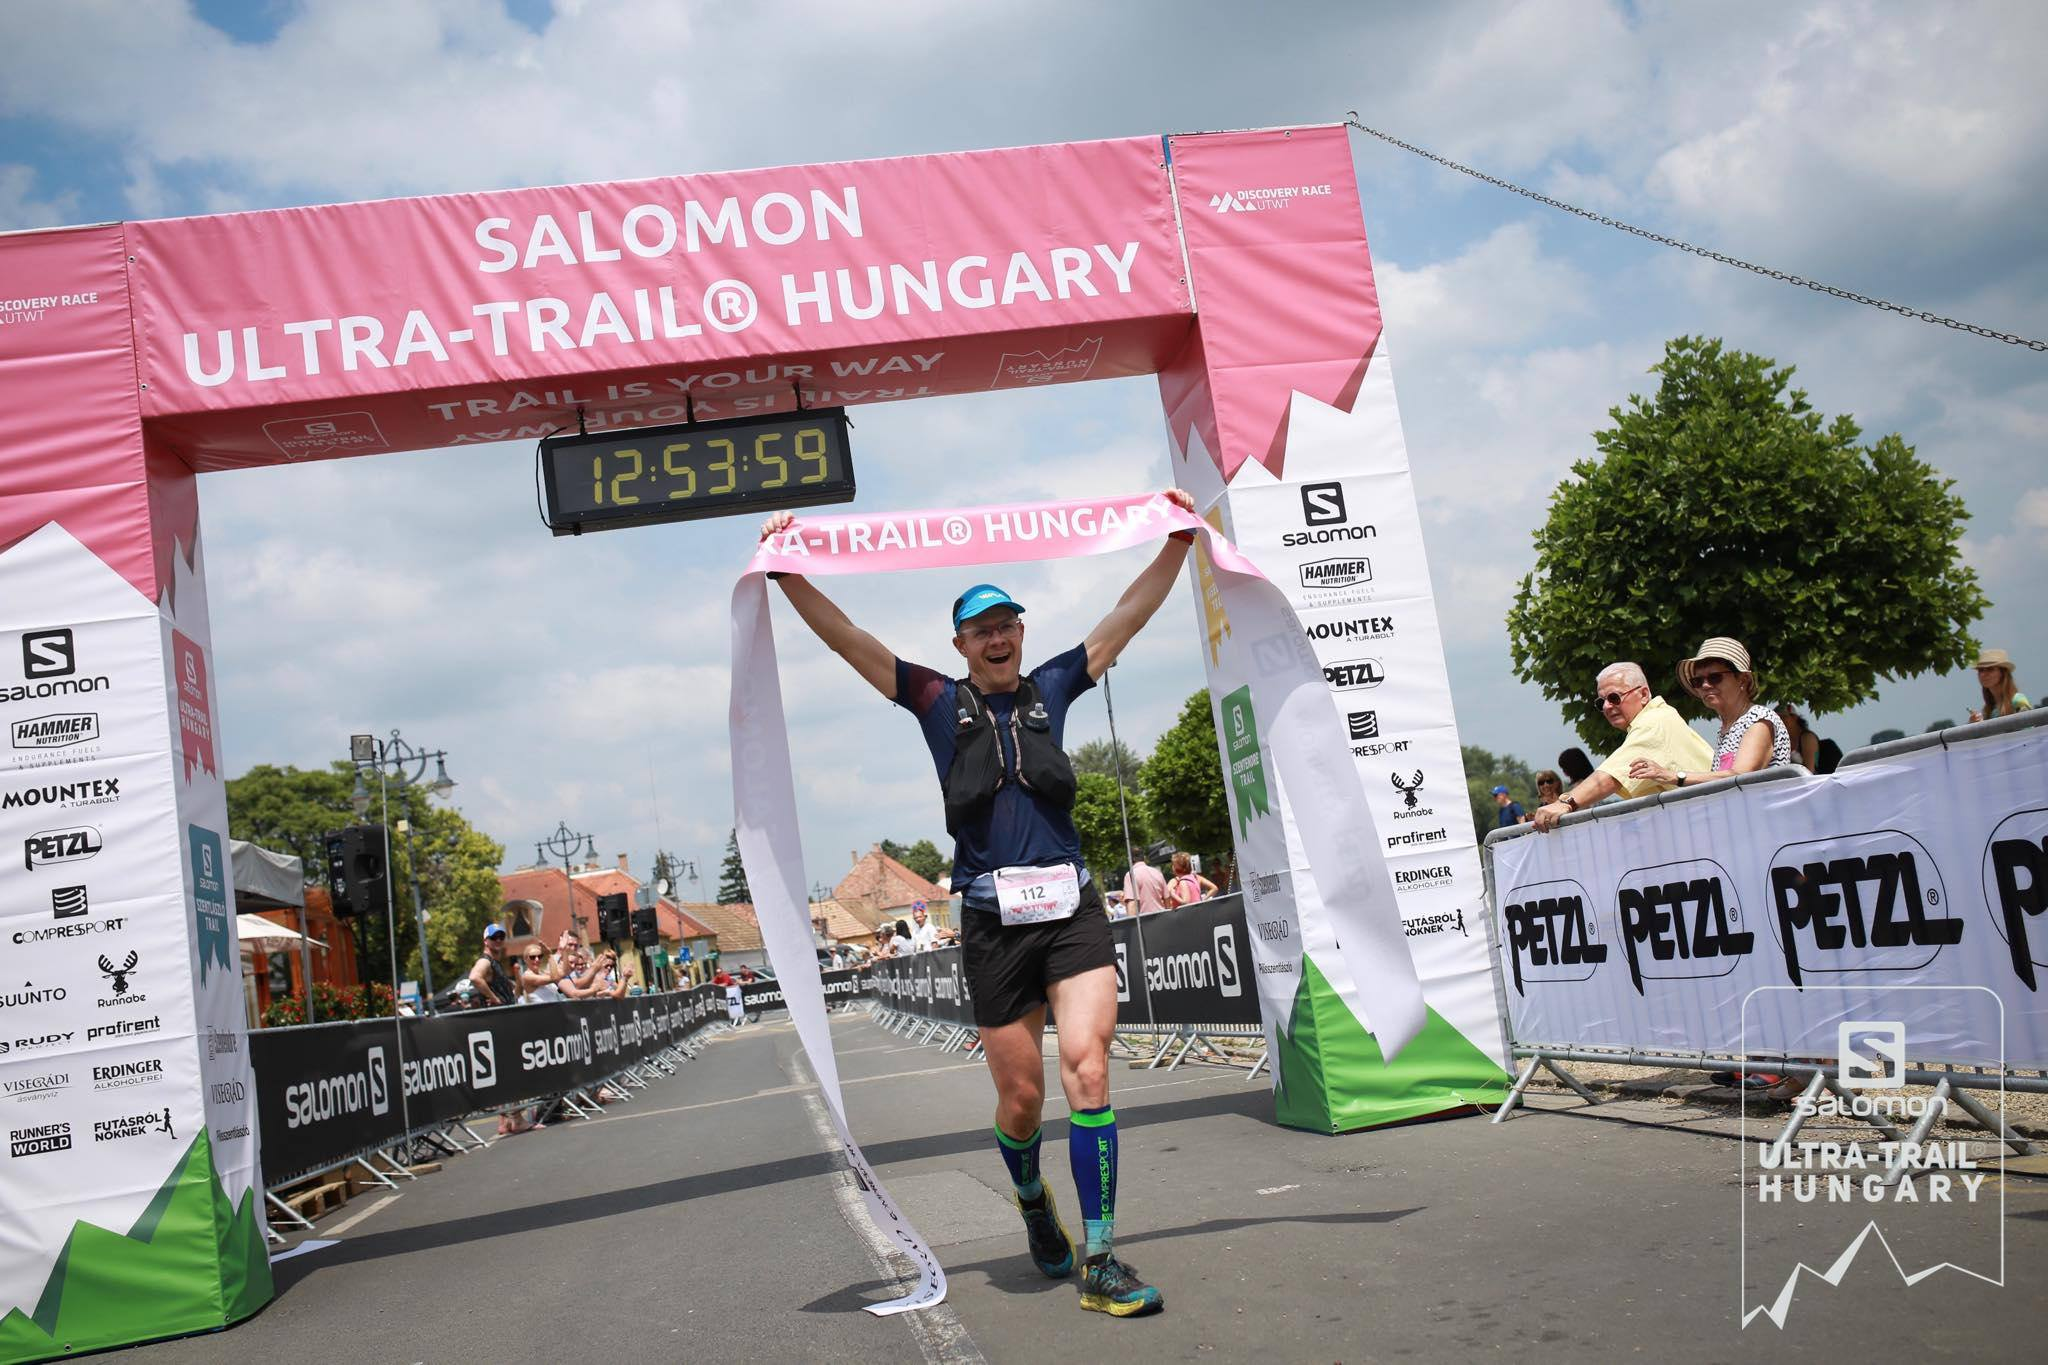 ultra_trail_hungary_2019_2.jpg